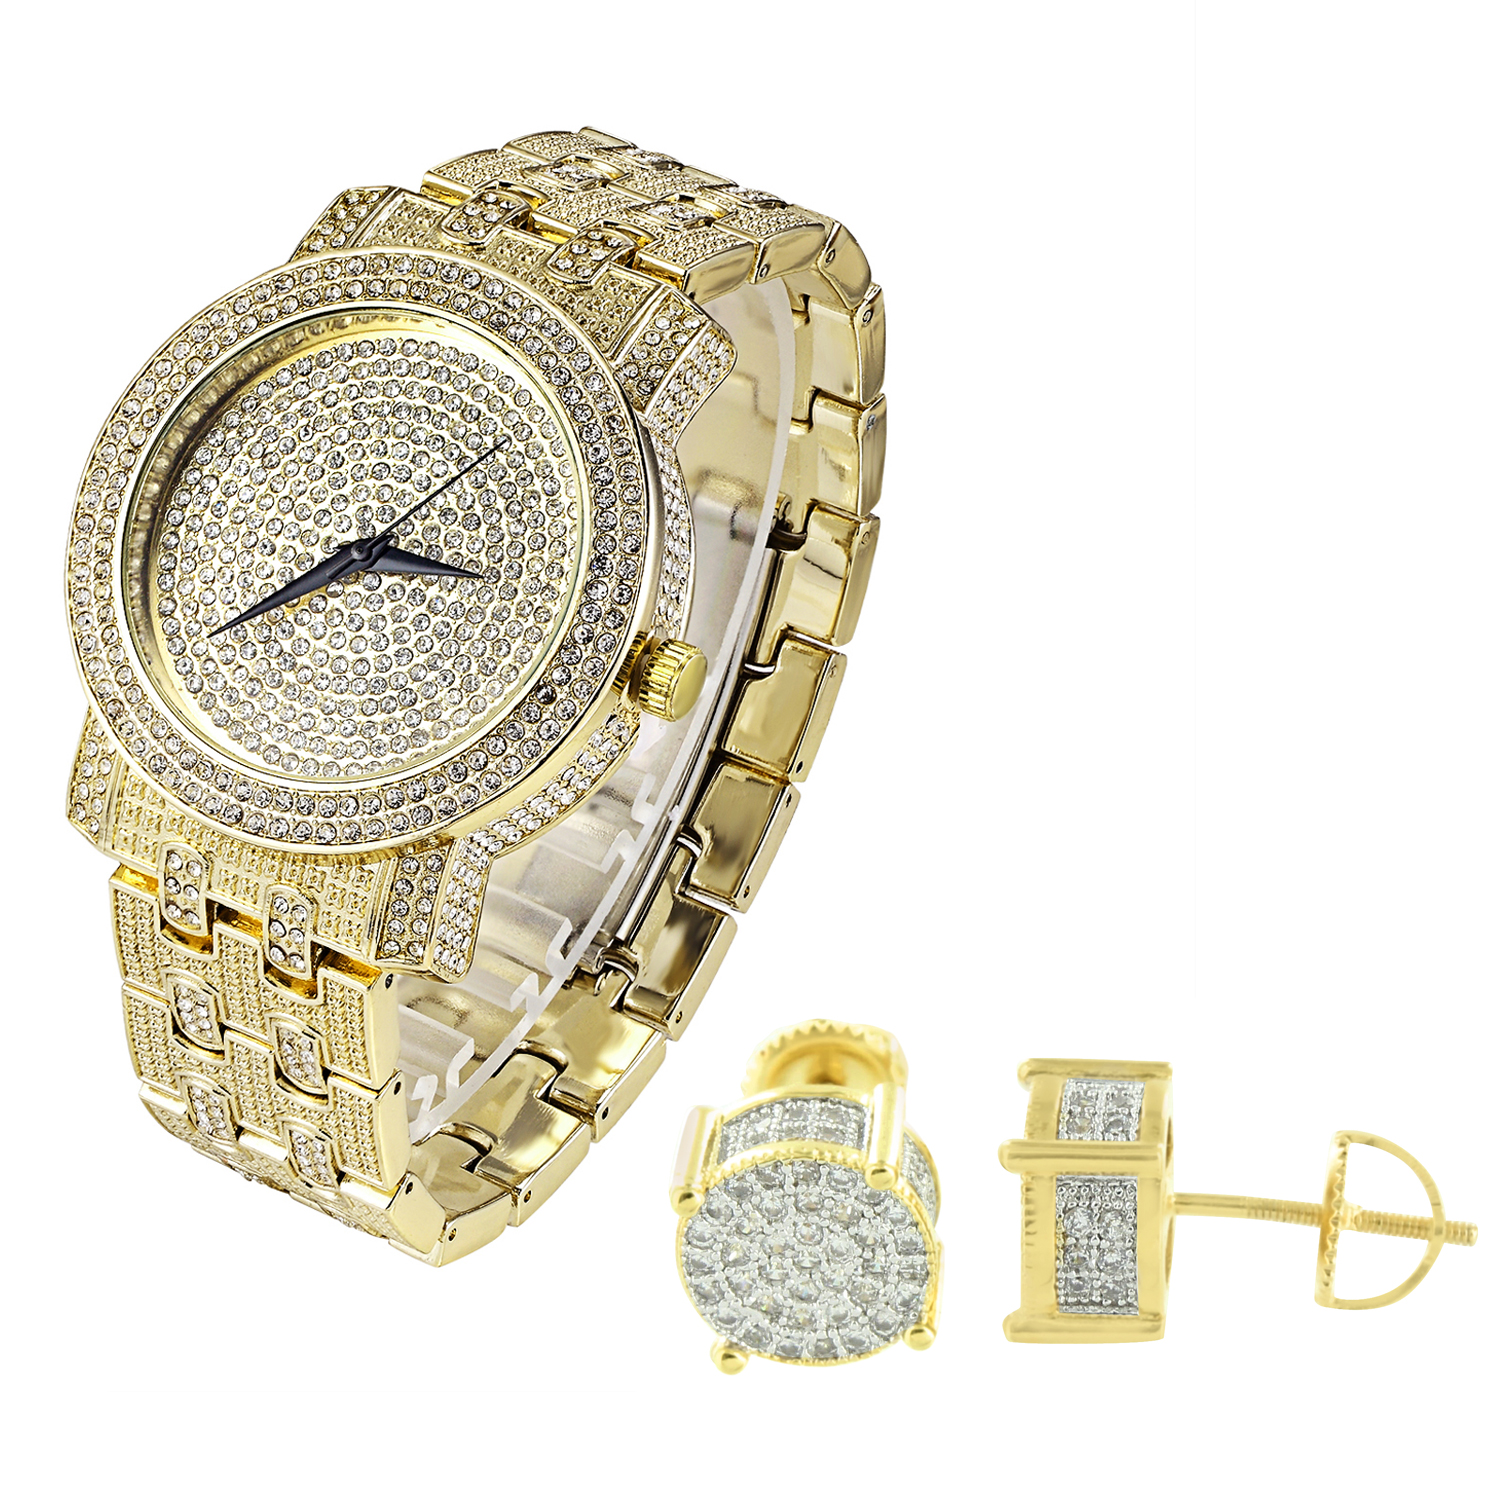 14k Gold Finish Studs Earrings Full Iced Out Techno Pave Watch Lab Created Cubic Zirconias 48mm